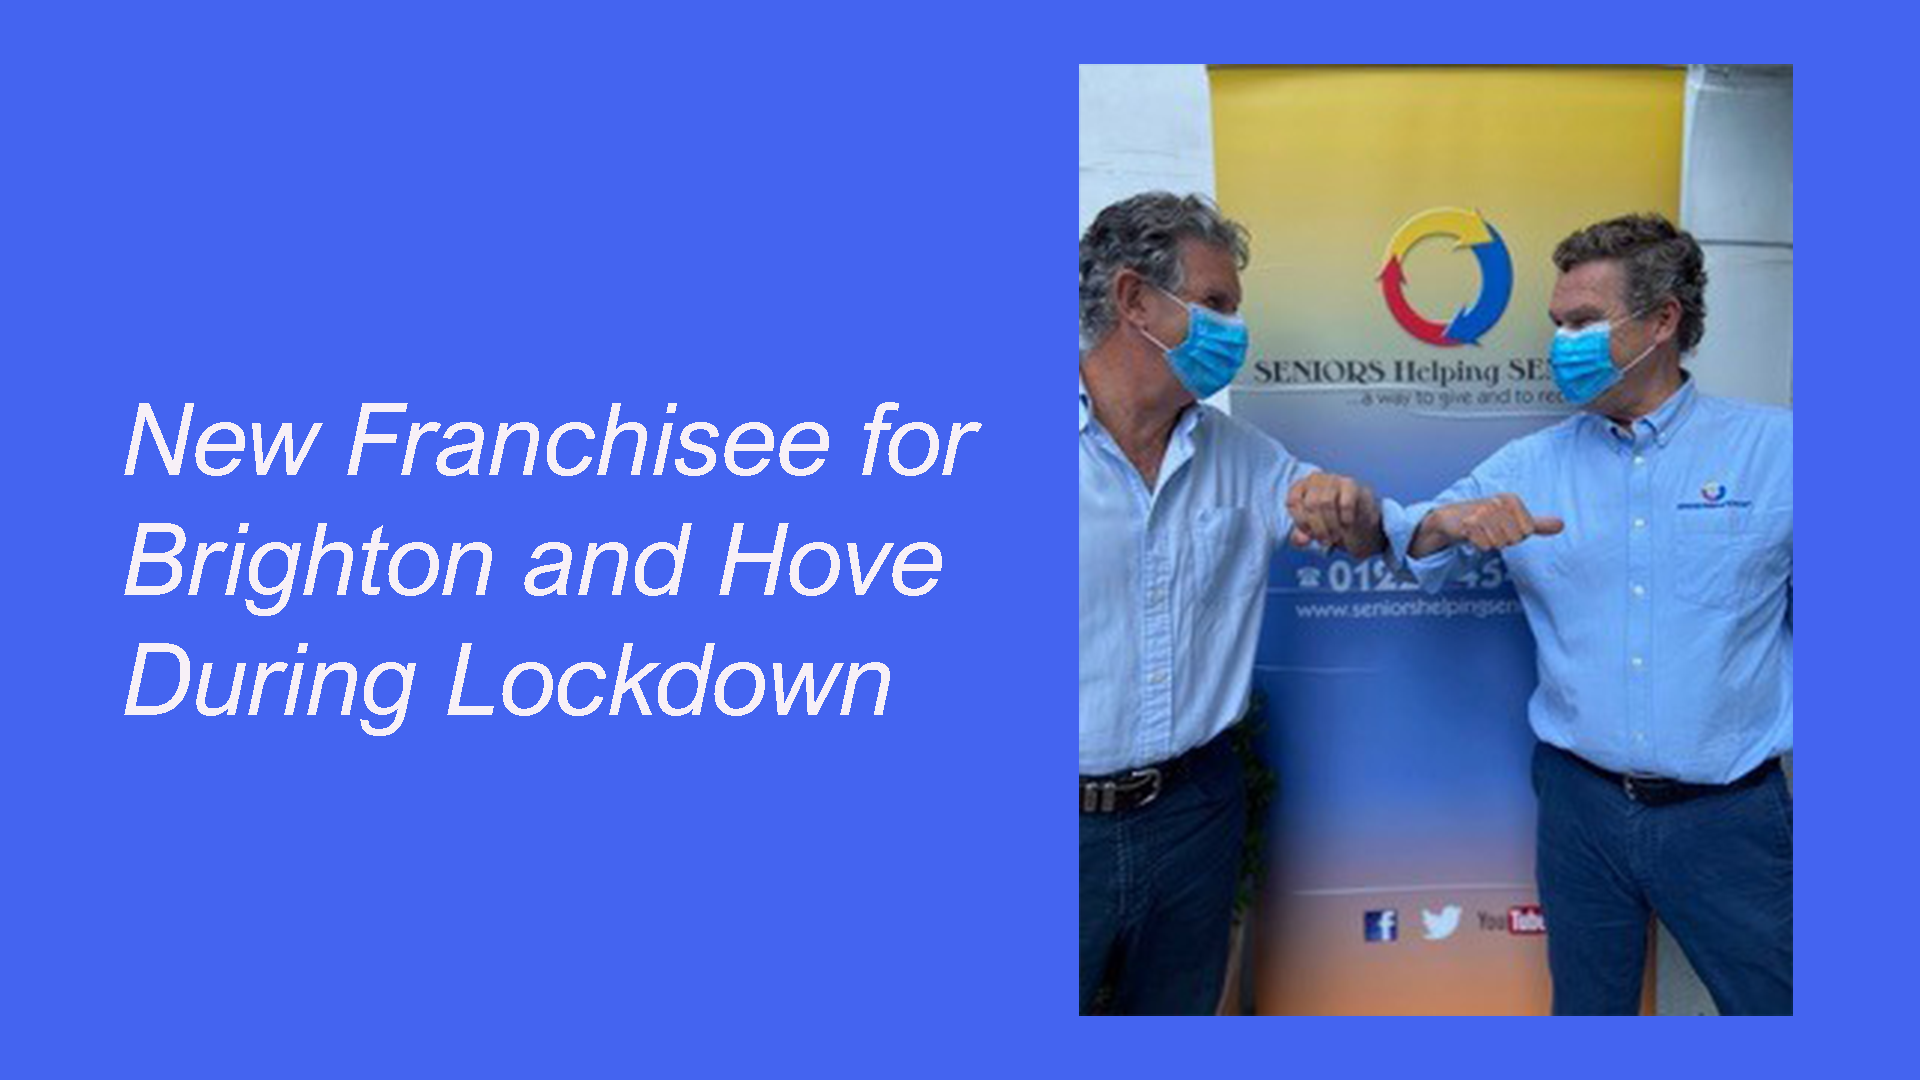 Seniors Helping Seniors signs a new franchise for Brighton and Hove during lockdown